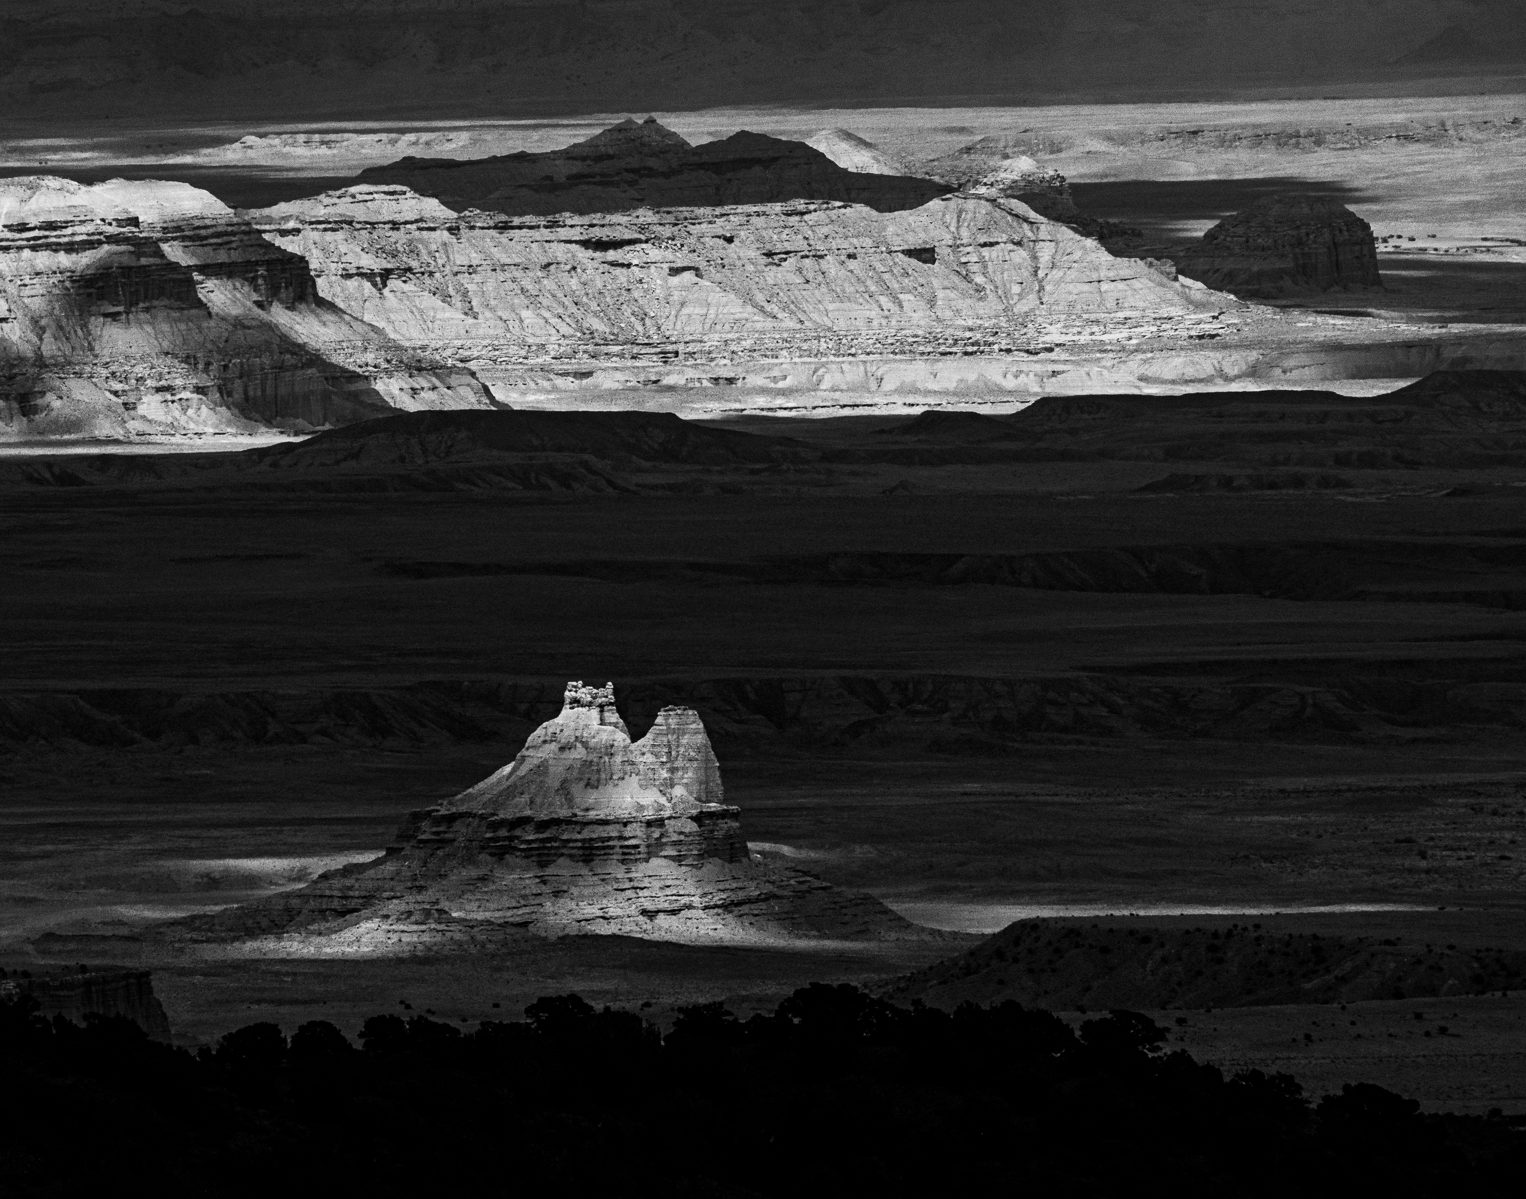 Capitol Reef National Park photo tour. Light and shadow on a landscape with desert butte.